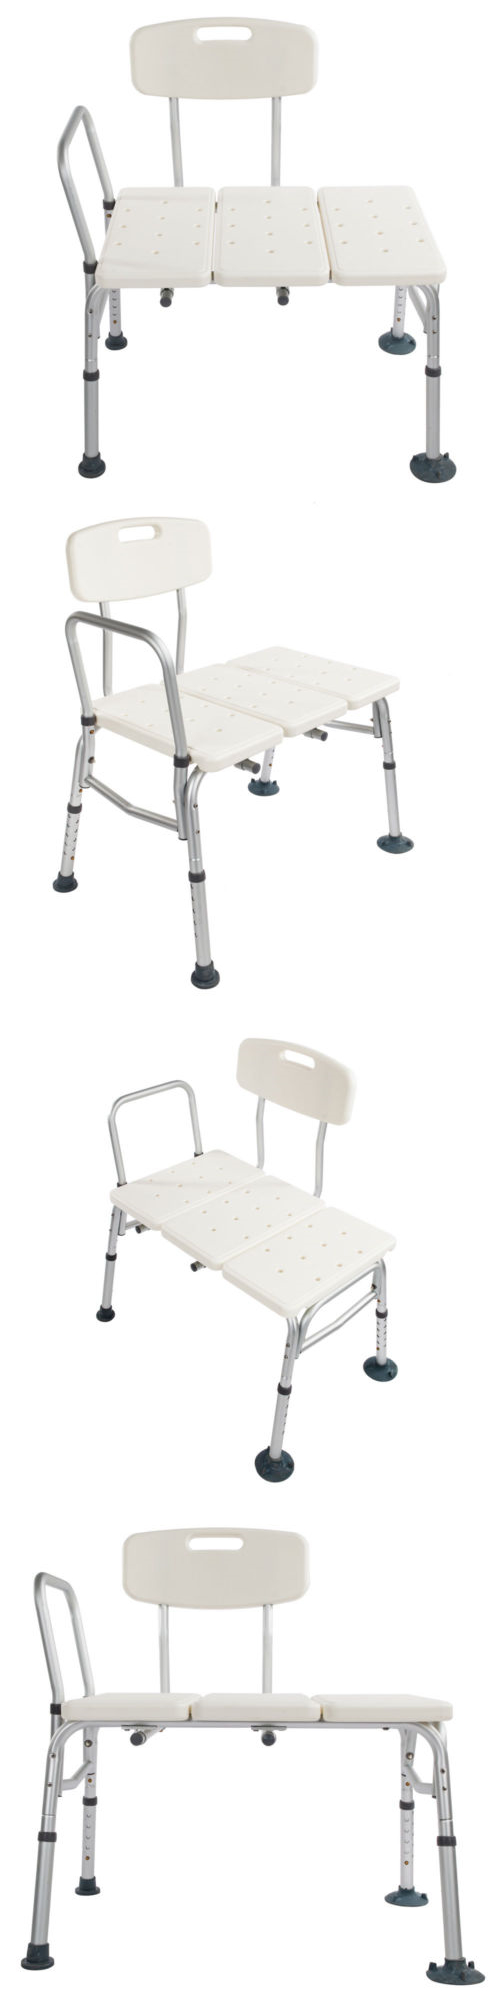 Shower and Bath Seats: Shower Chair 10 Height Adjustable Bath Tub ...